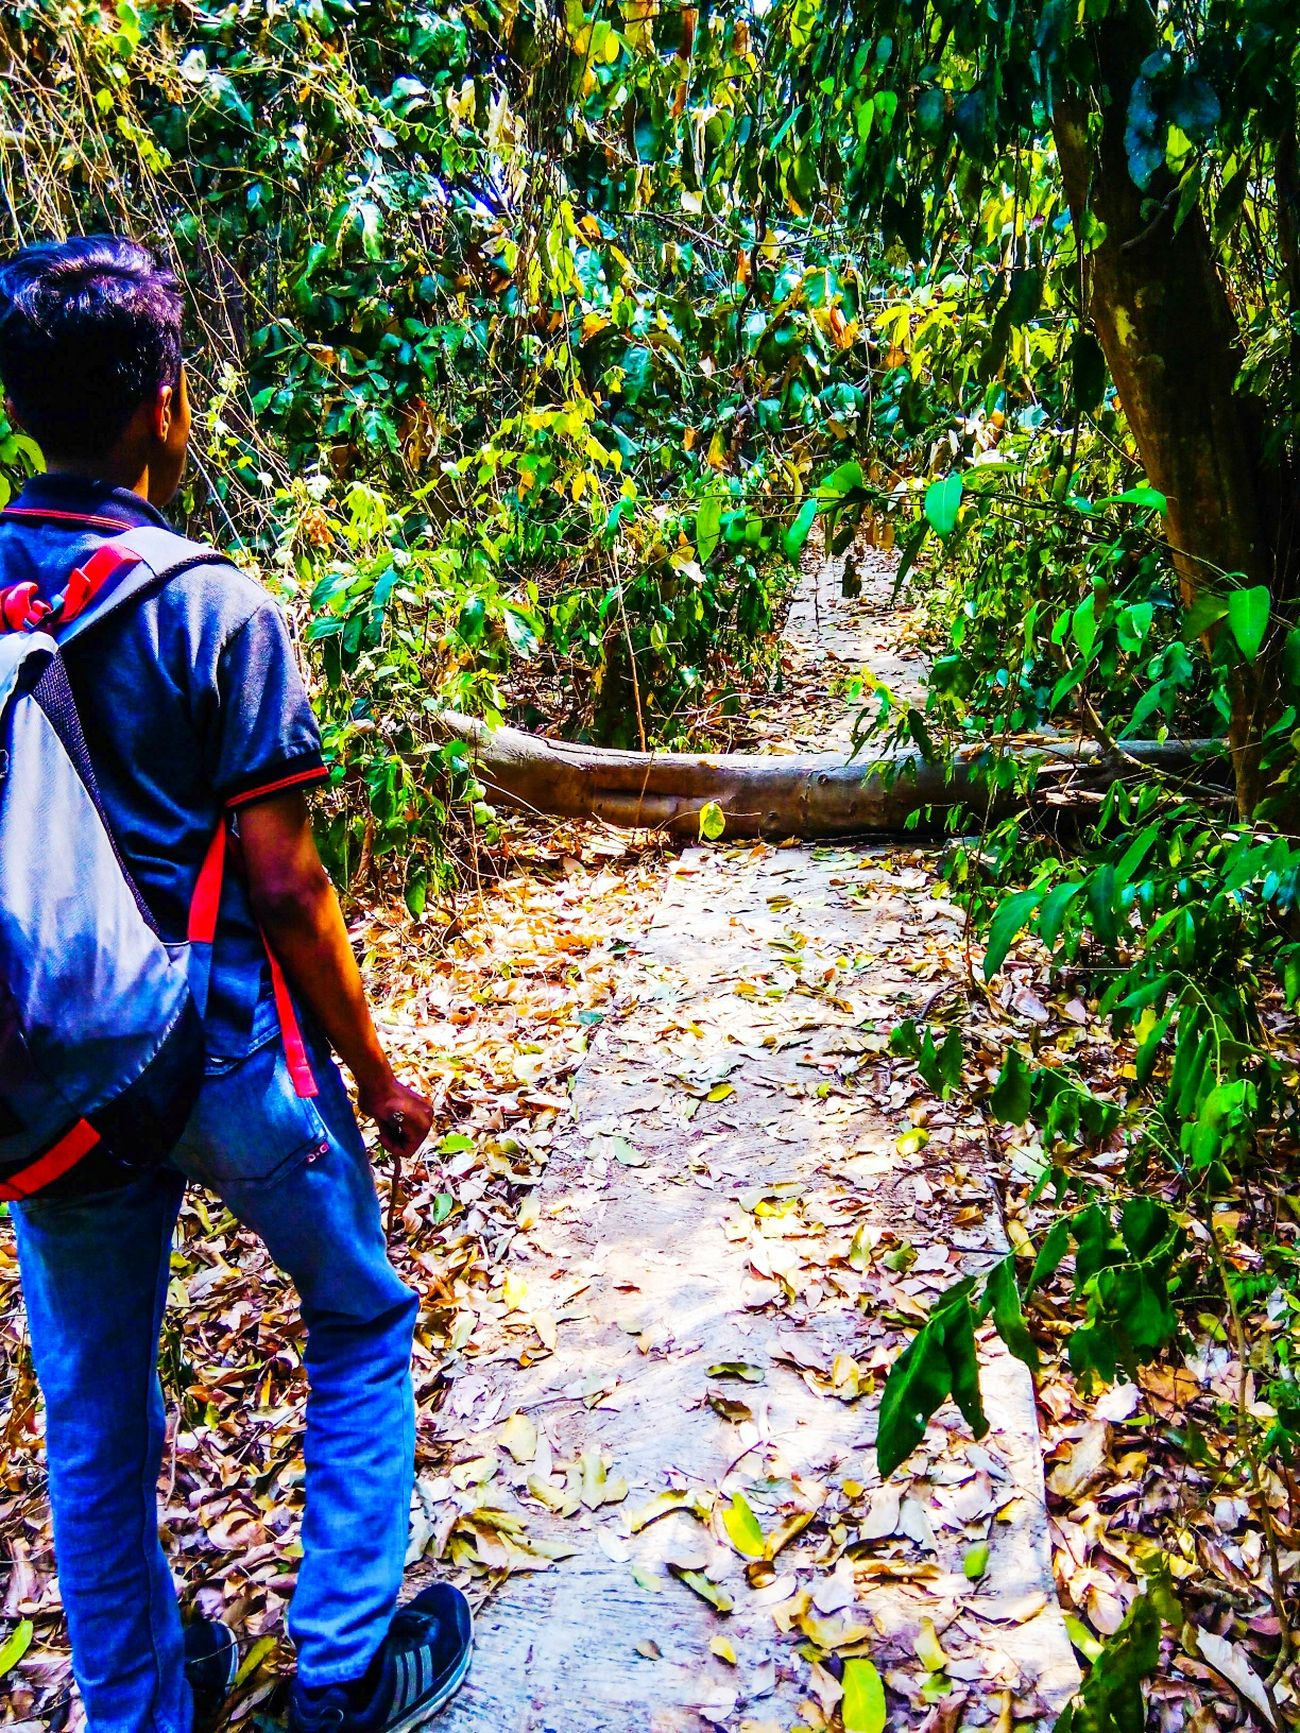 Hiking Adventure Traveling Bantenbanget Explorebanten Jelajah_indonesia